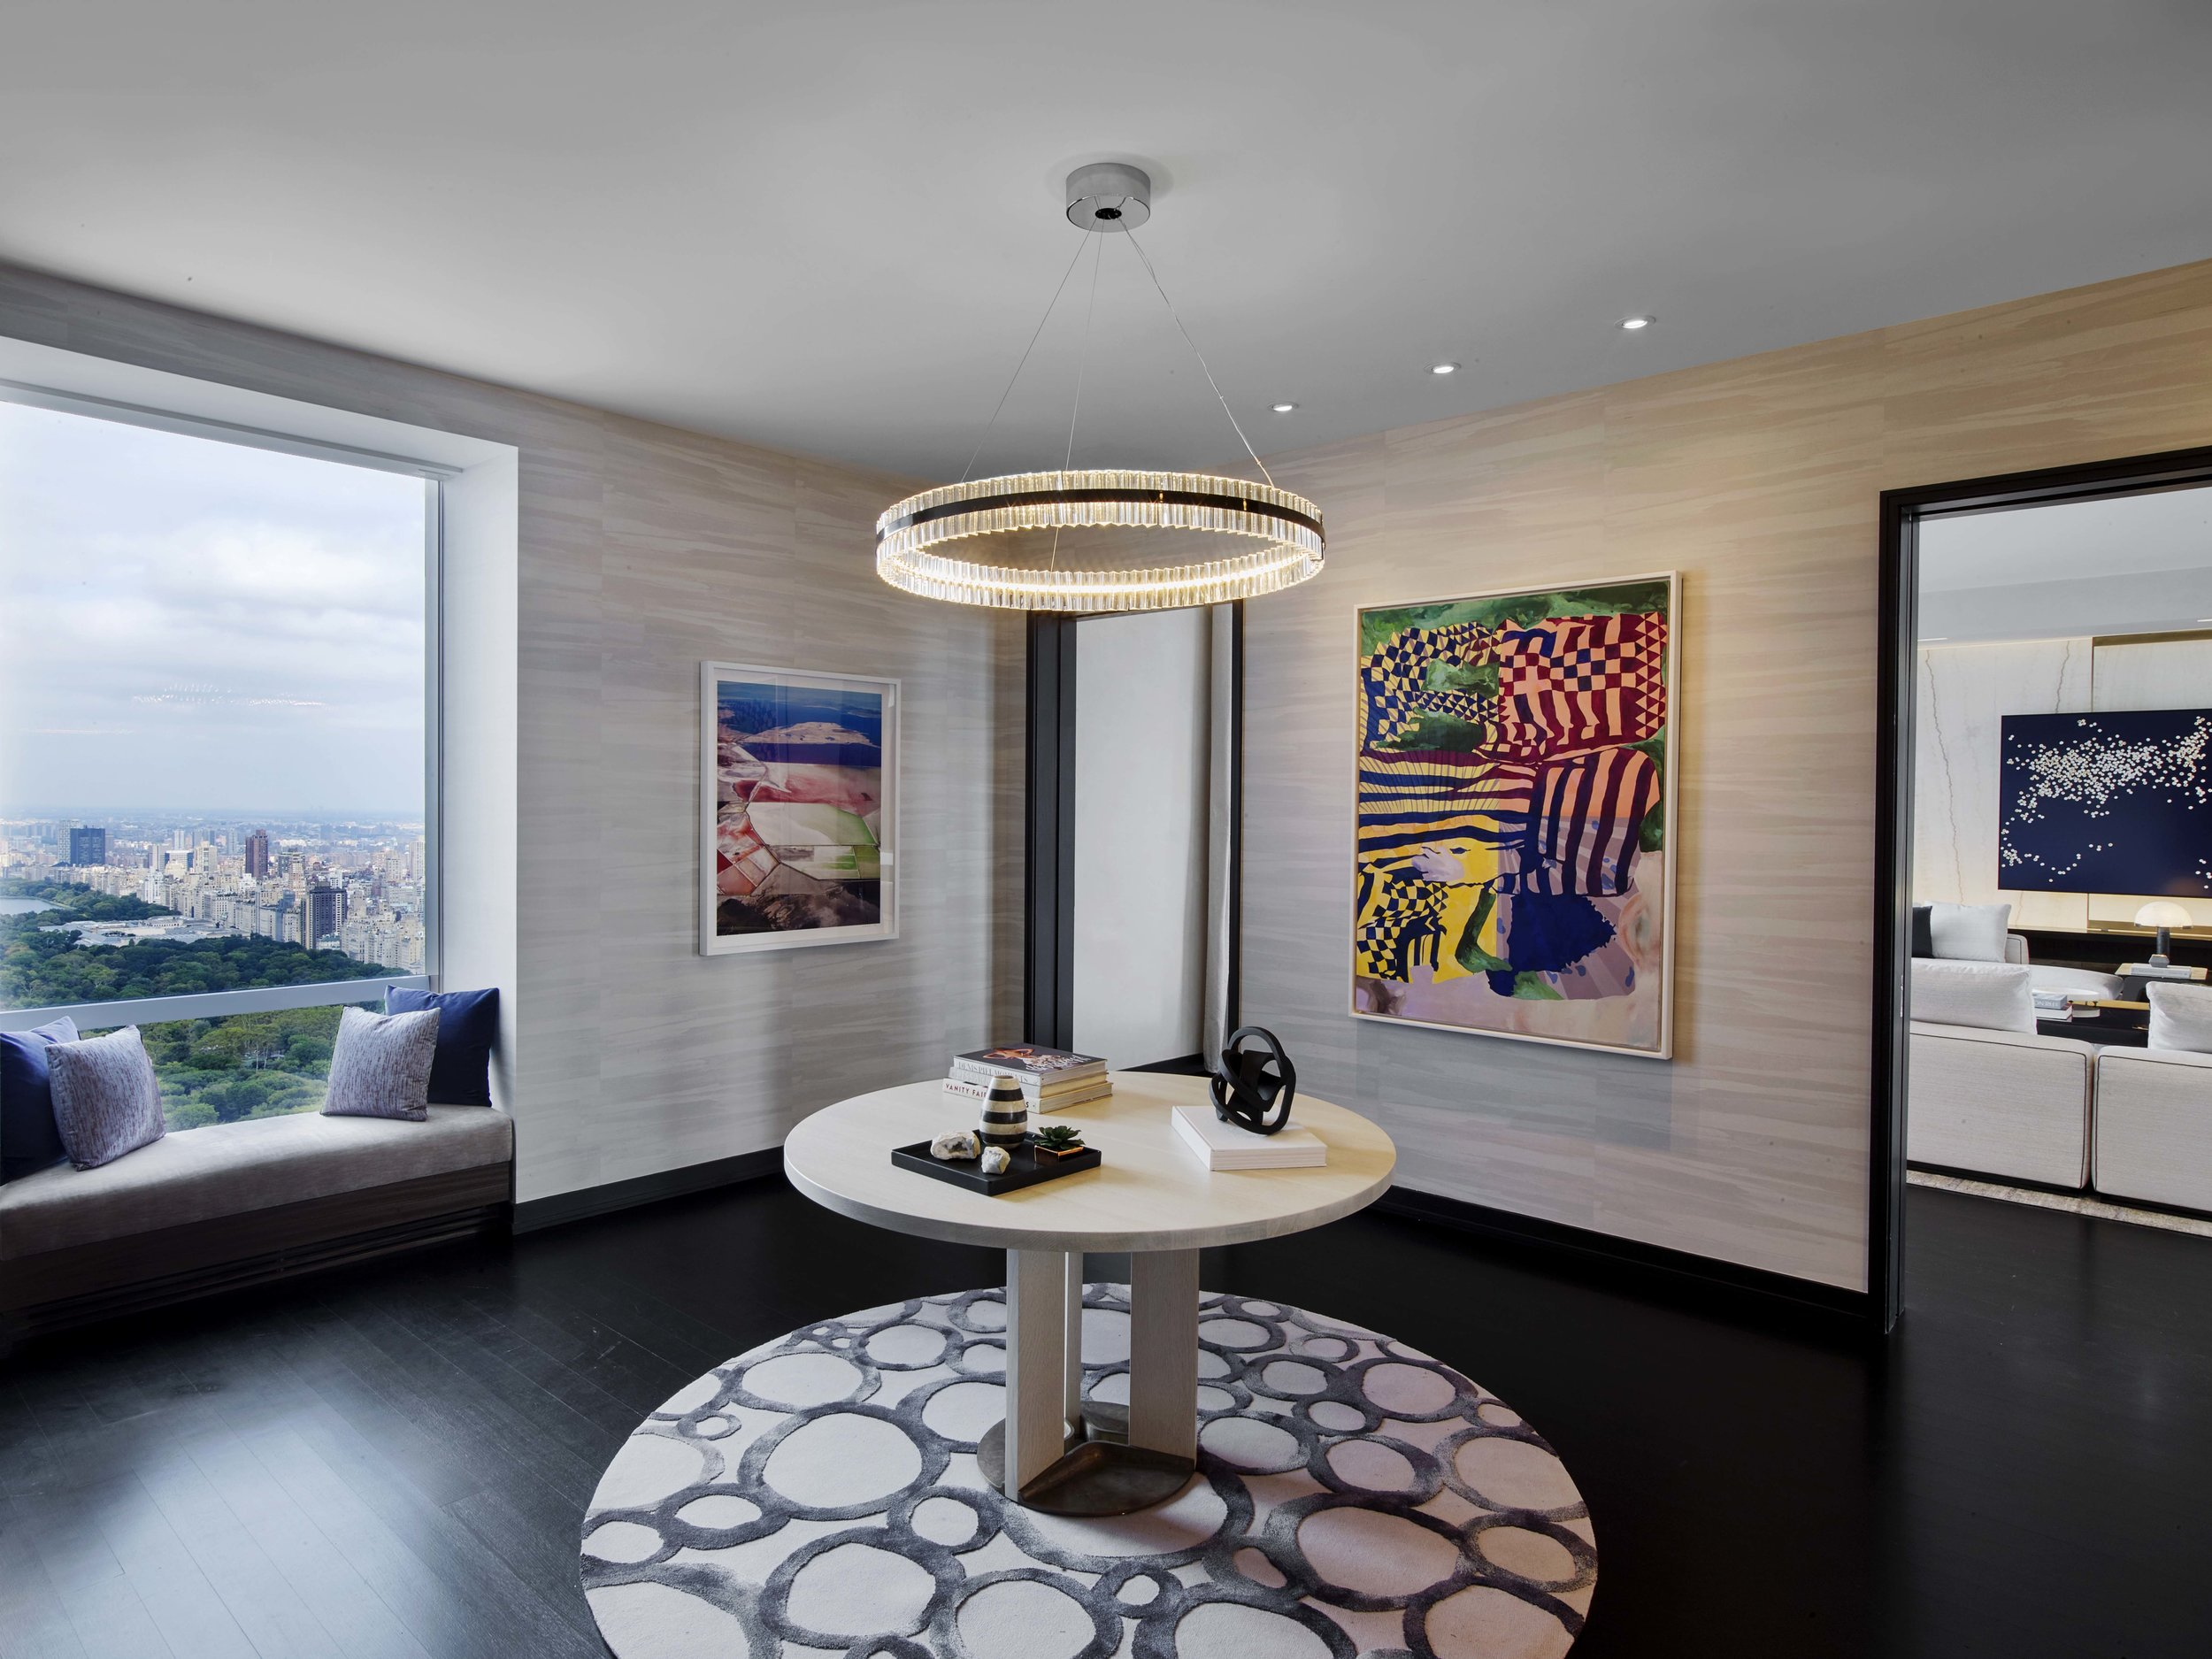 Check Out This Sky-High, Billionaire's Row Pad Designed By Jeffrey Beers In The Uber-Luxe One57 Asking $29 Million